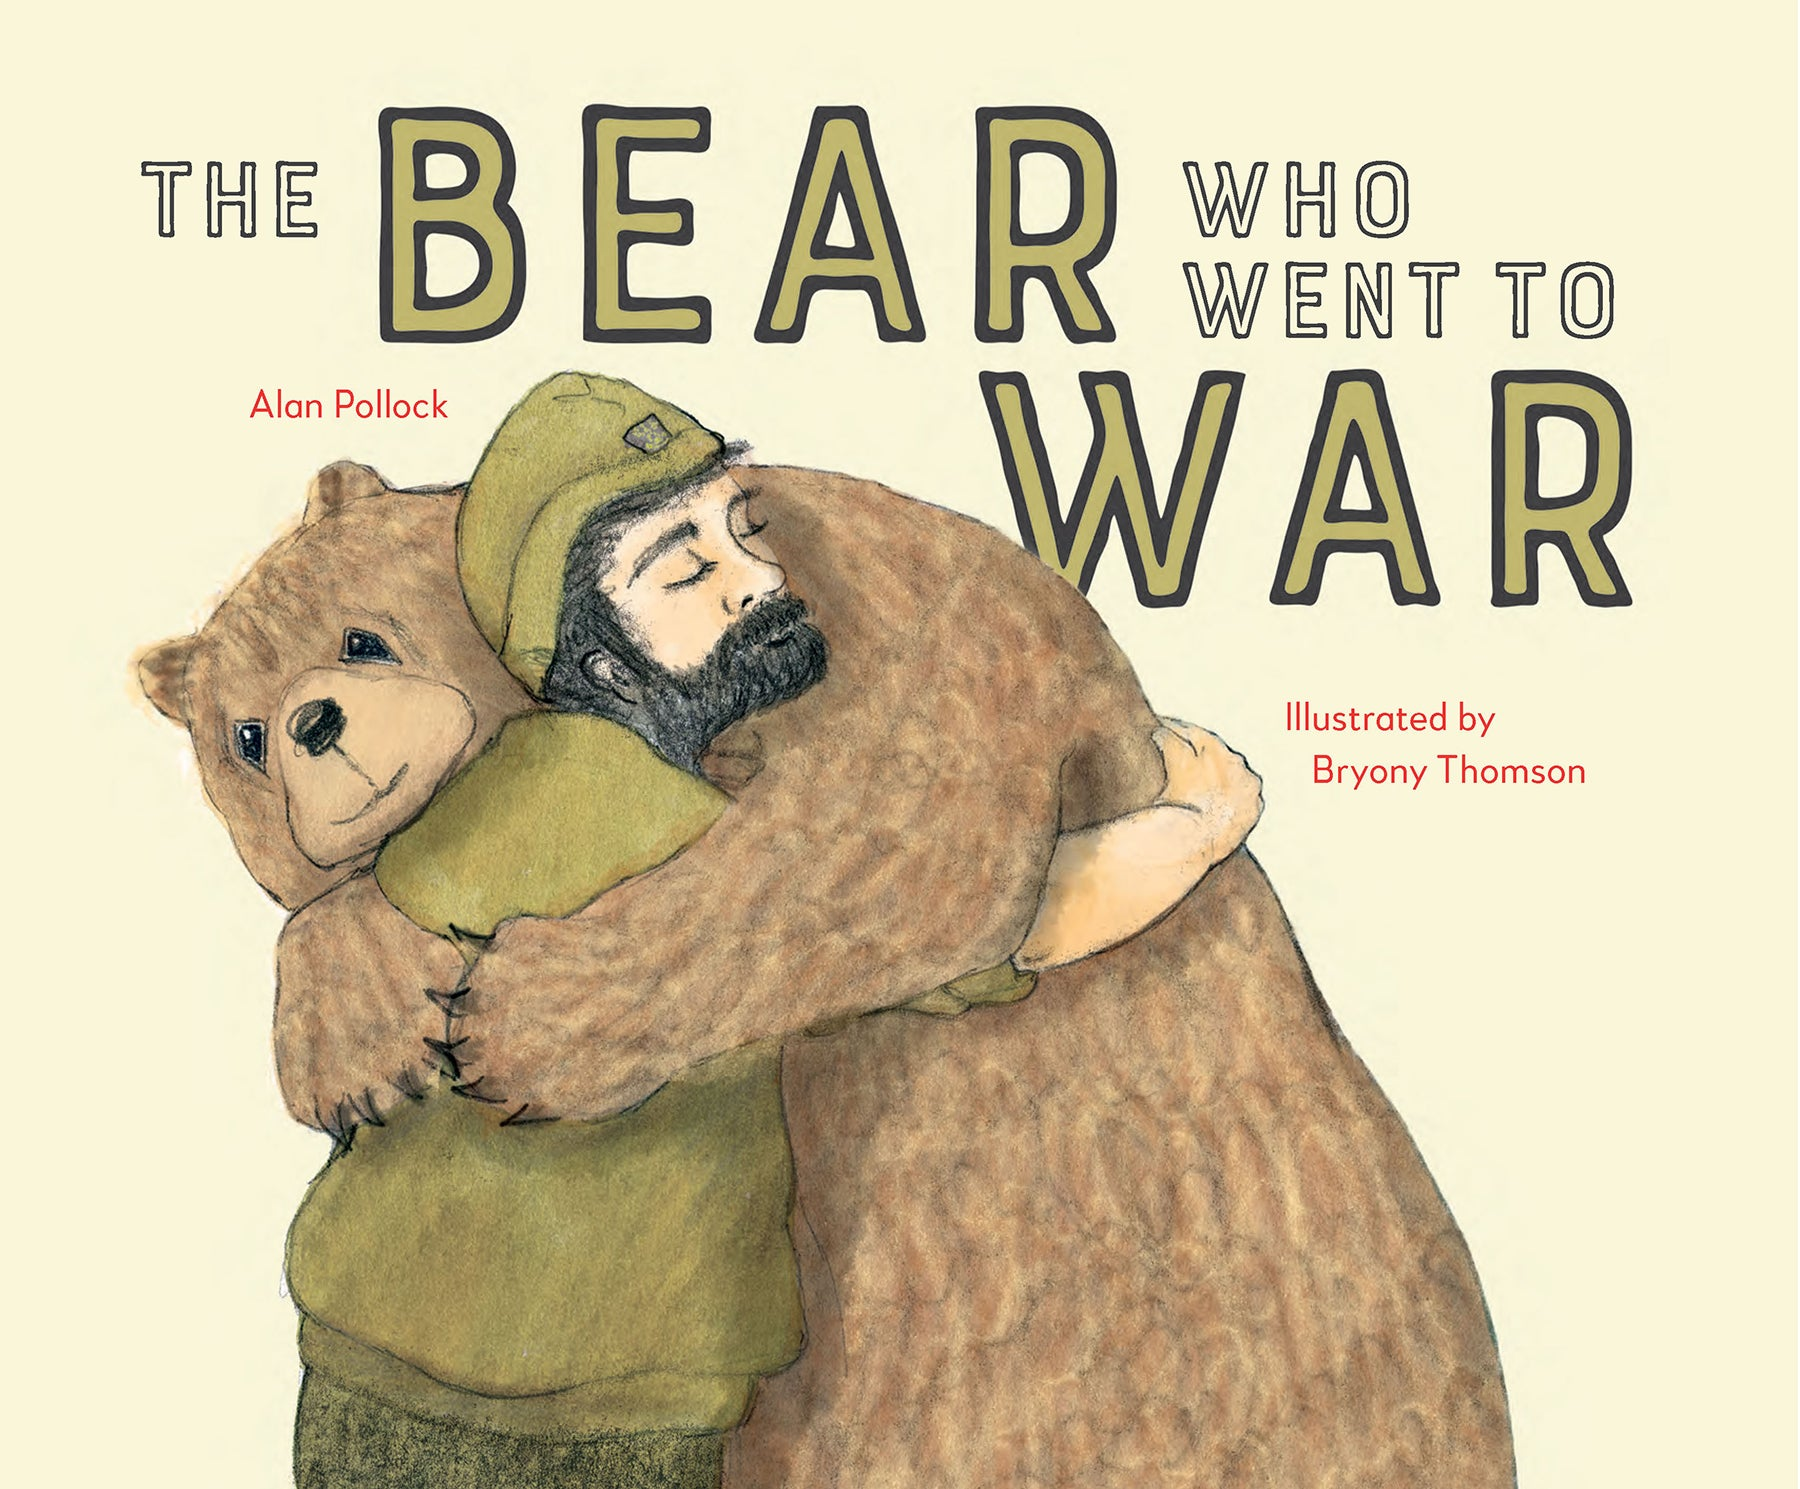 The Bear who went to War by Alan Pollock